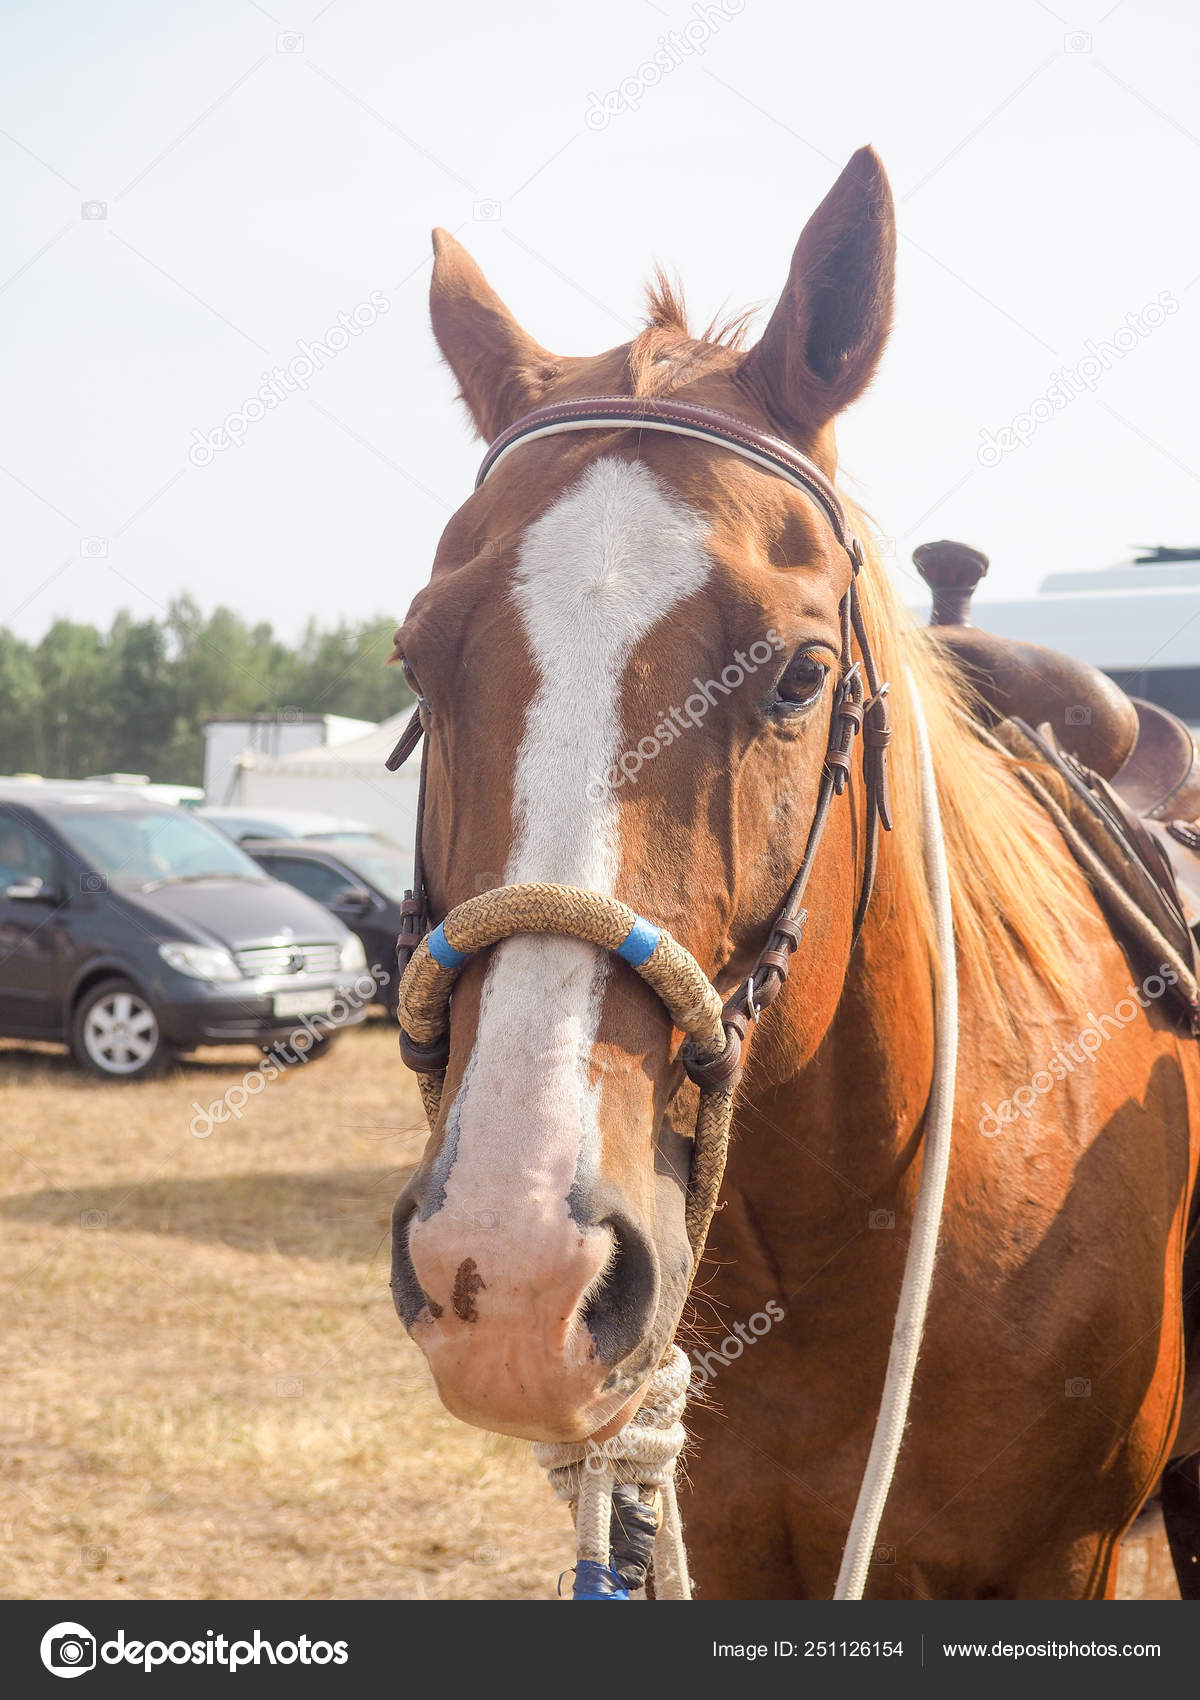 Brown Horse Head With Reins Close Up View Of Beautiful Horse Face Standing Outdoor In Farm And Looking To Camera Stock Photo C Byallasaa 251126154